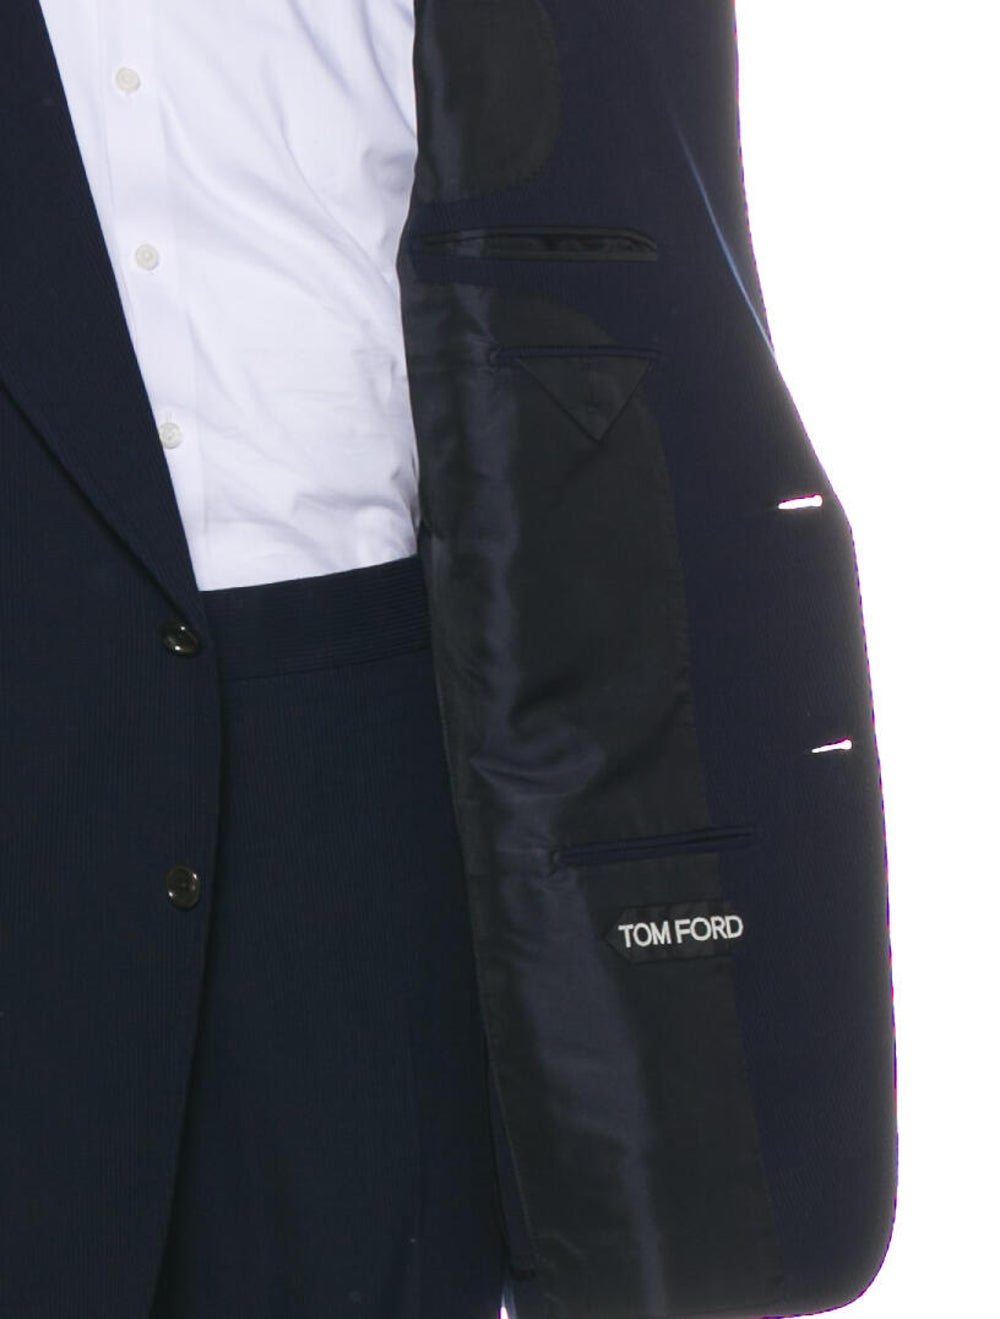 Tom Ford Two-Piece Suit Blue - image 5